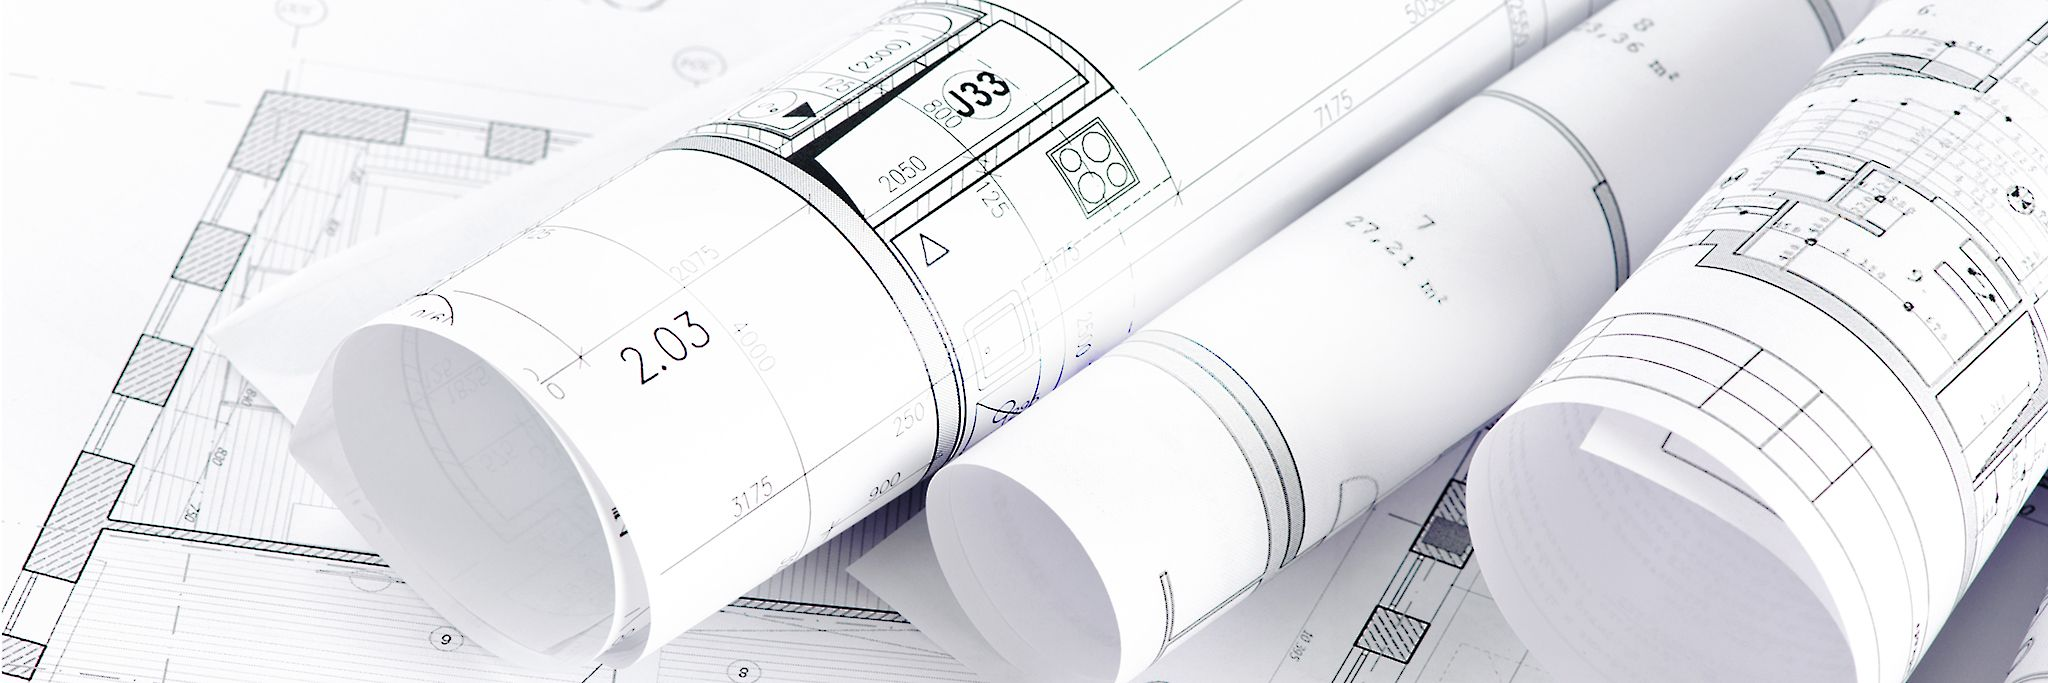 Product Drawings Resource Center